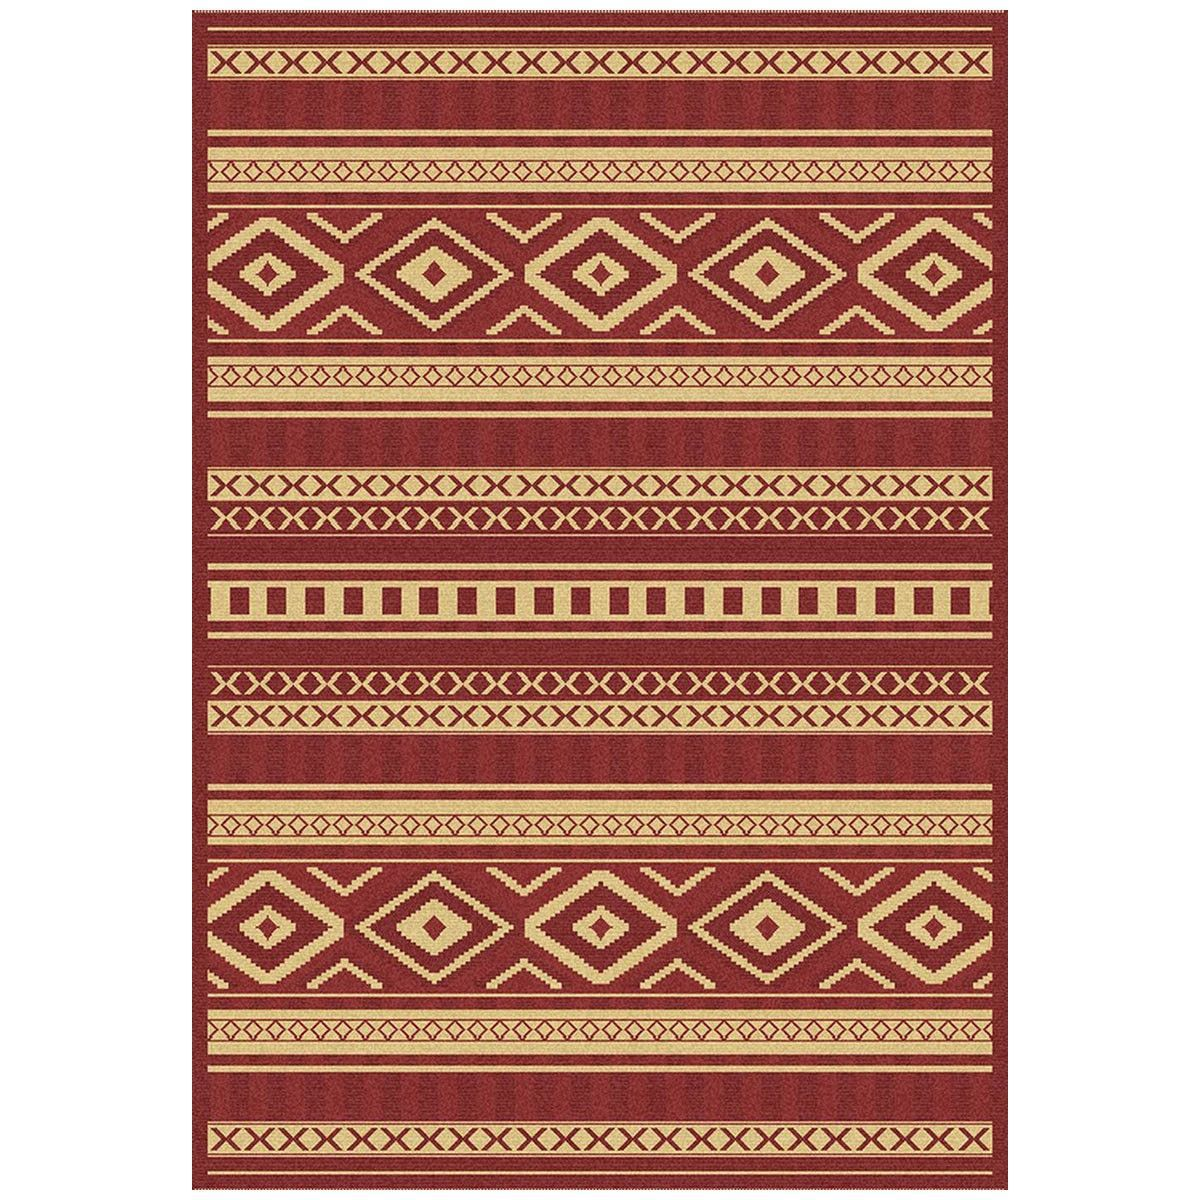 Dynamic Rugs Piazza 4463-3707 Red Area Rug